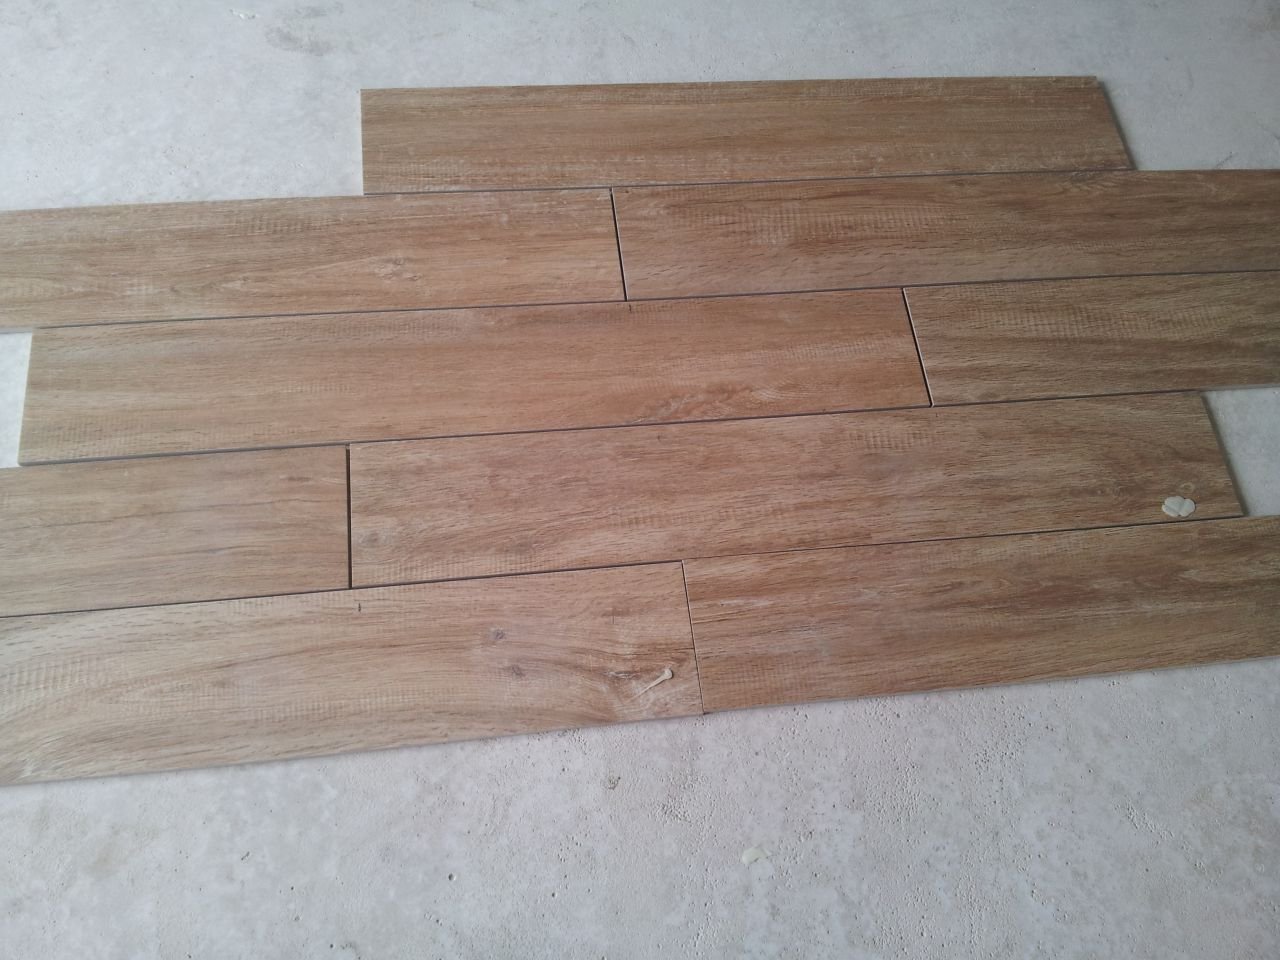 Sens et technique de pose pr carrelage imitation parquet for Poser carrelage imitation parquet